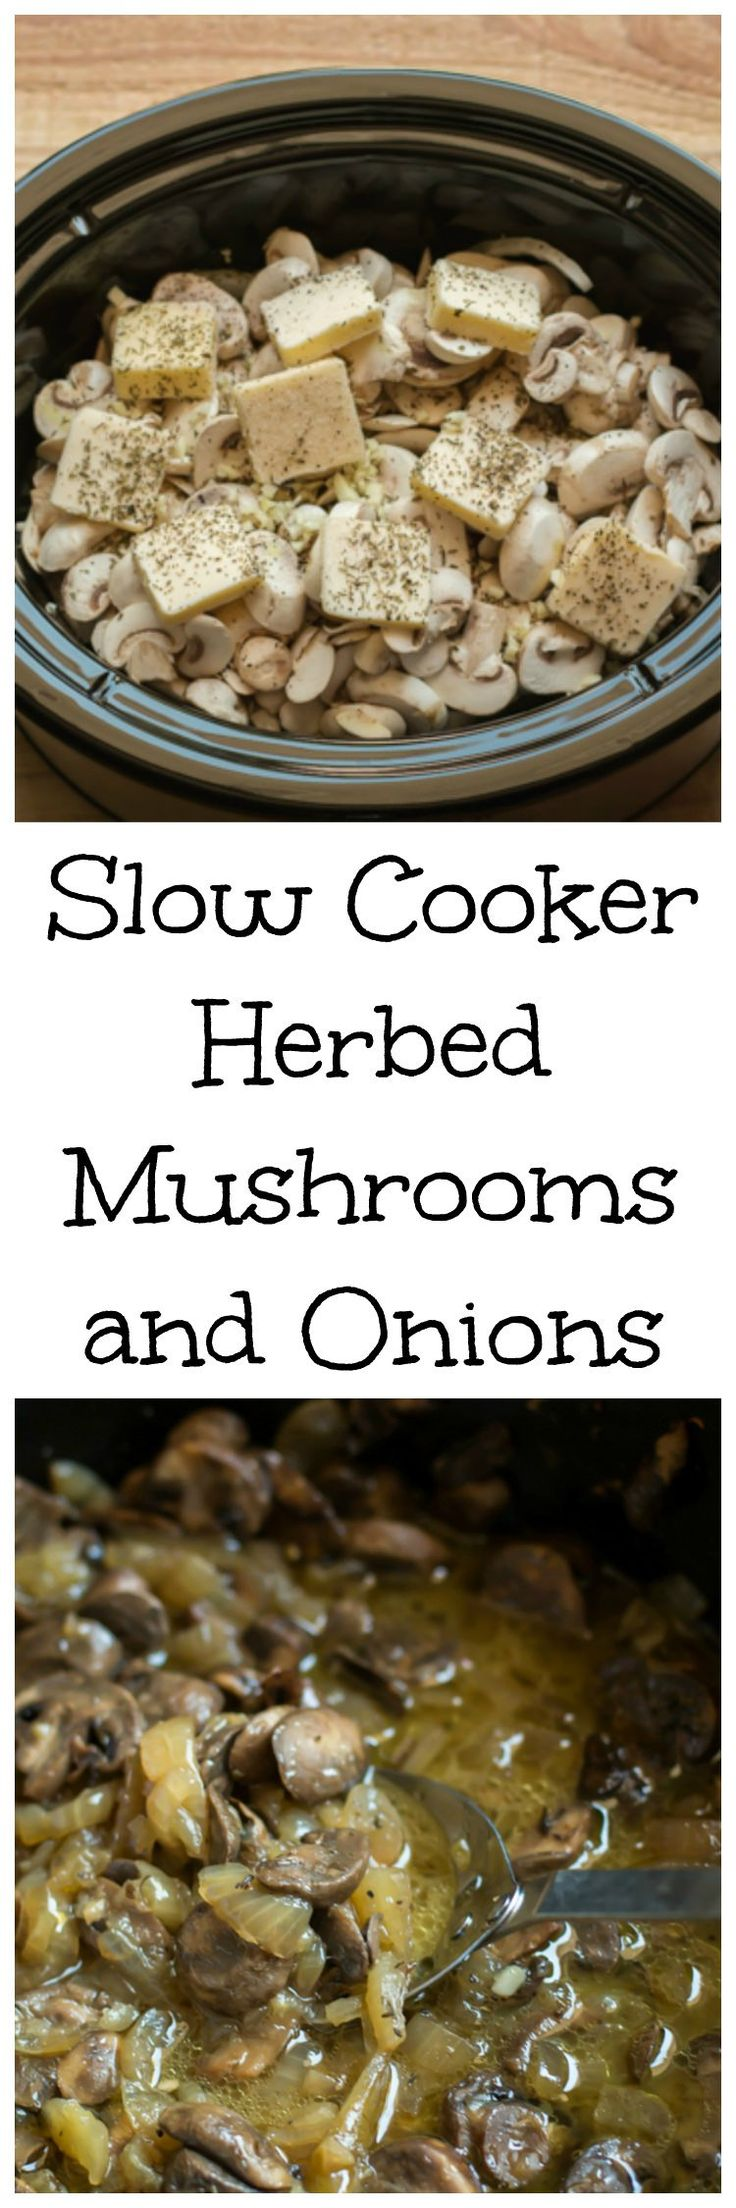 ... crock pot slow cooker onions forward slow cooker herbed mushrooms and